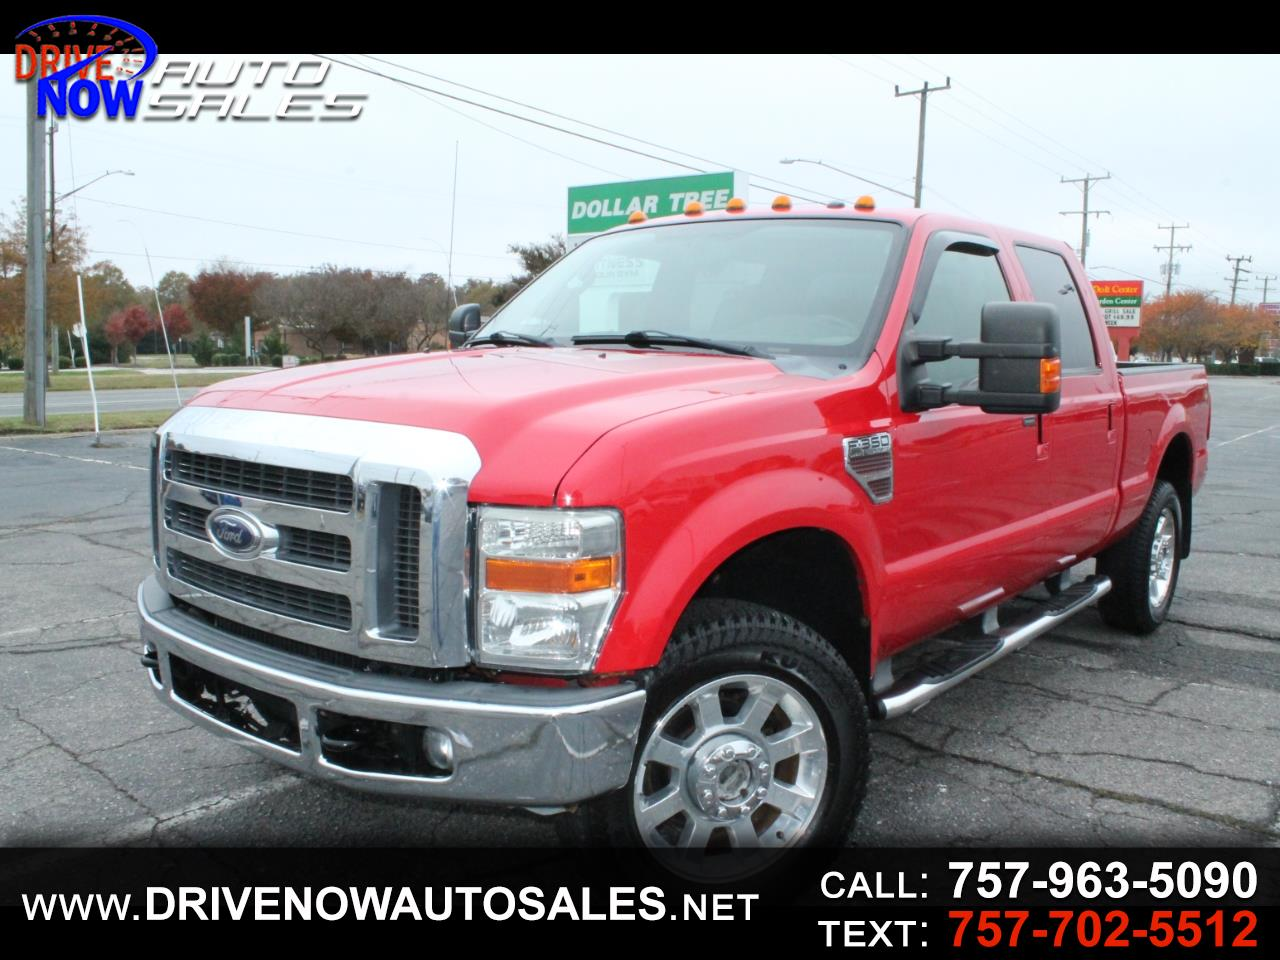 Ford F-350 SD Cabela Crew Cab Long Bed 4WD 2010